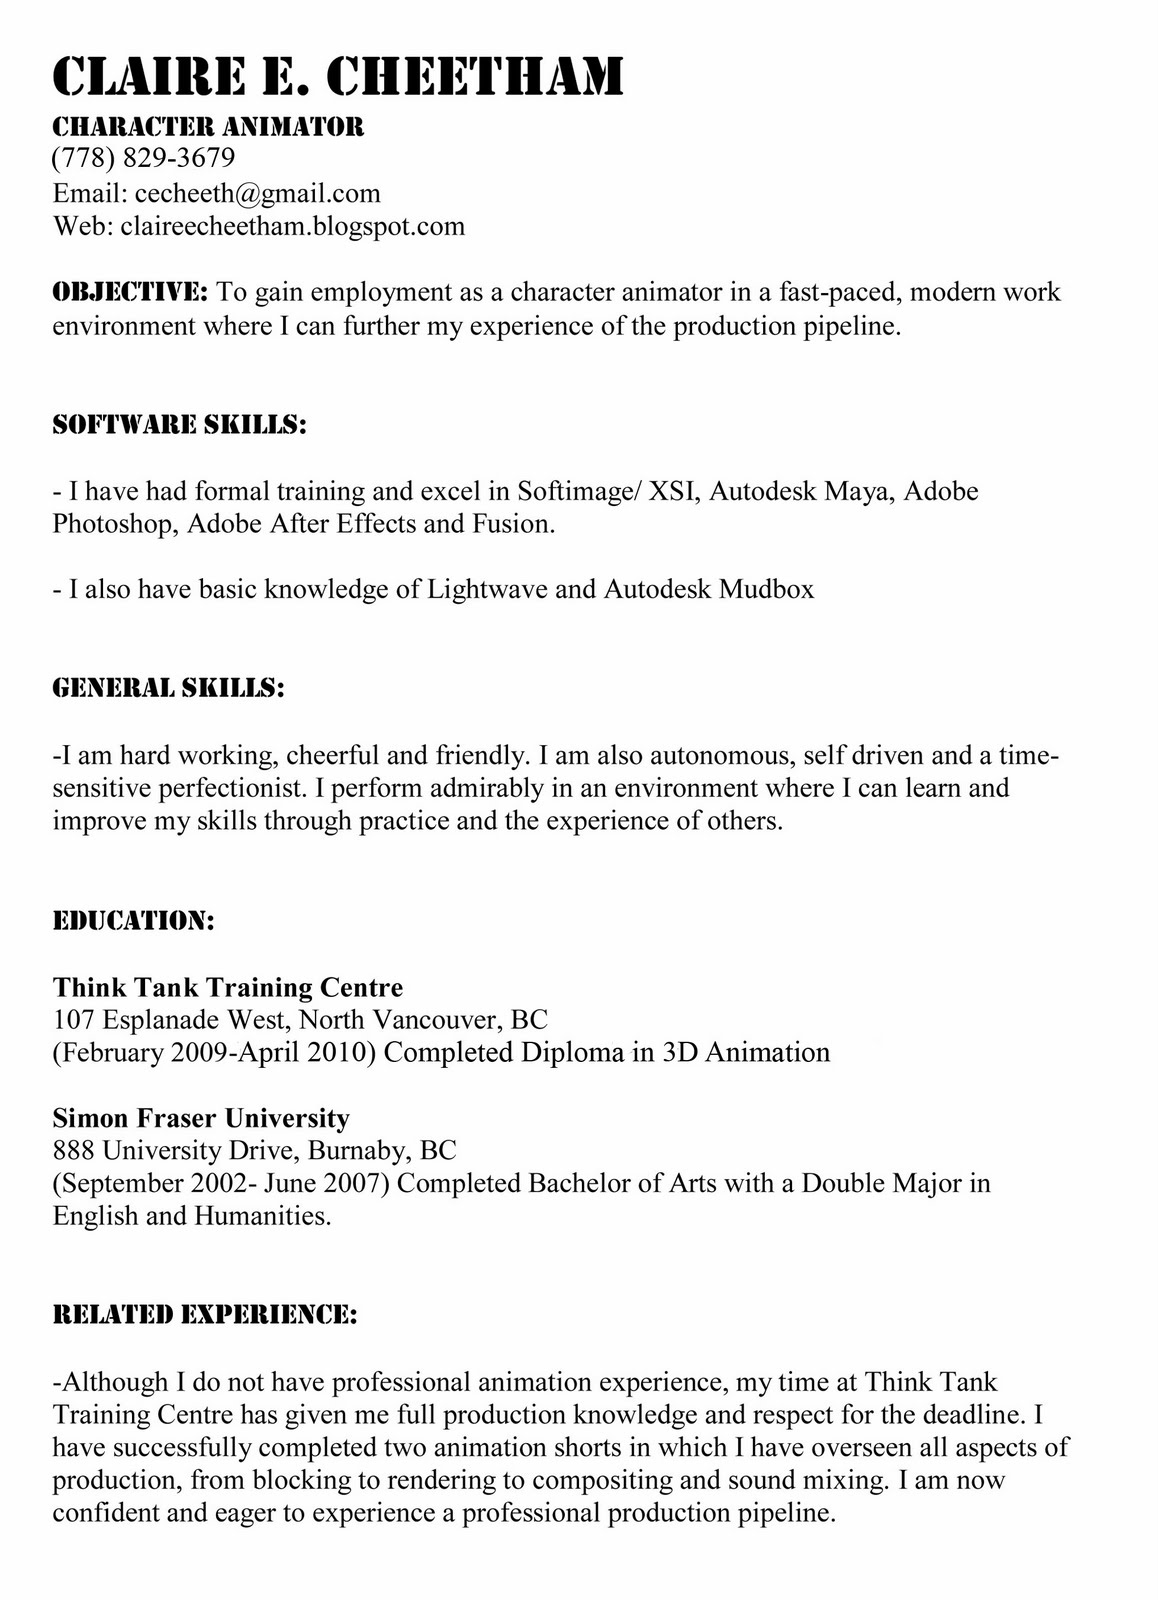 Photographer Resume Samples VisualCV Resume Samples Database Coaching Cover  Letter Examples Cover Letter Examples Coaching Cover